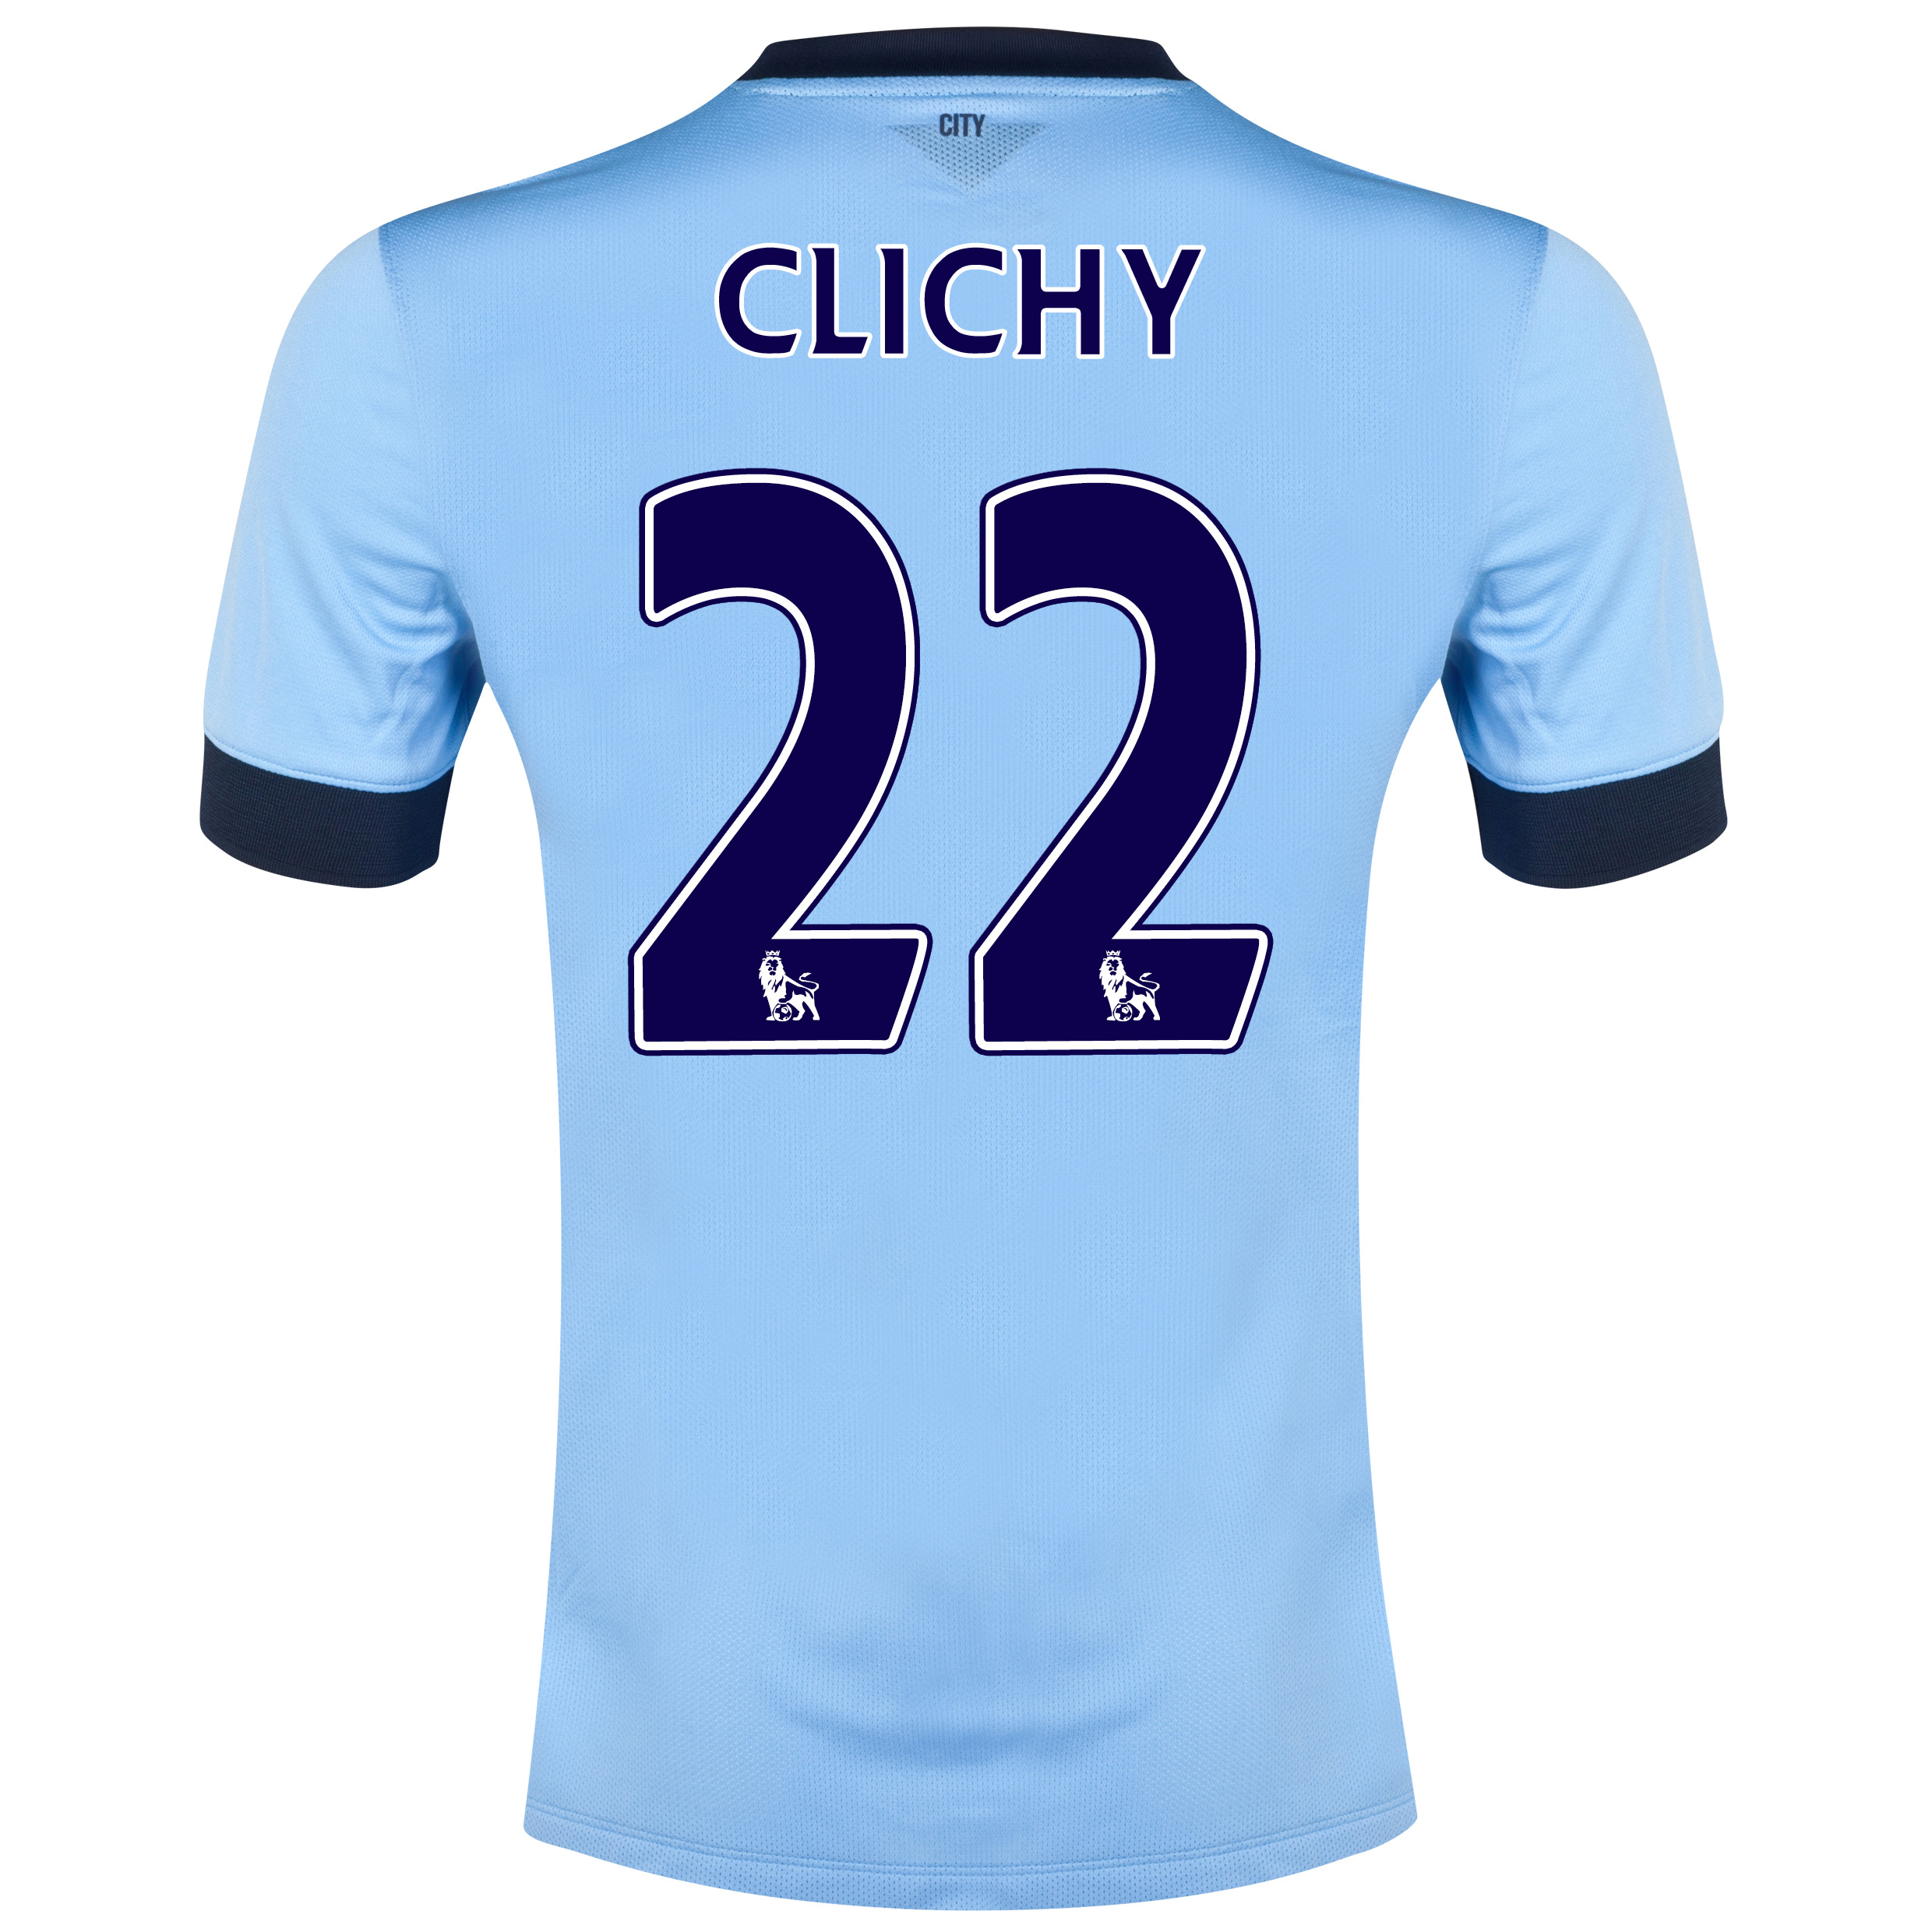 Manchester City Home Shirt 2014/15 Sky Blue with Clichy 22 printing